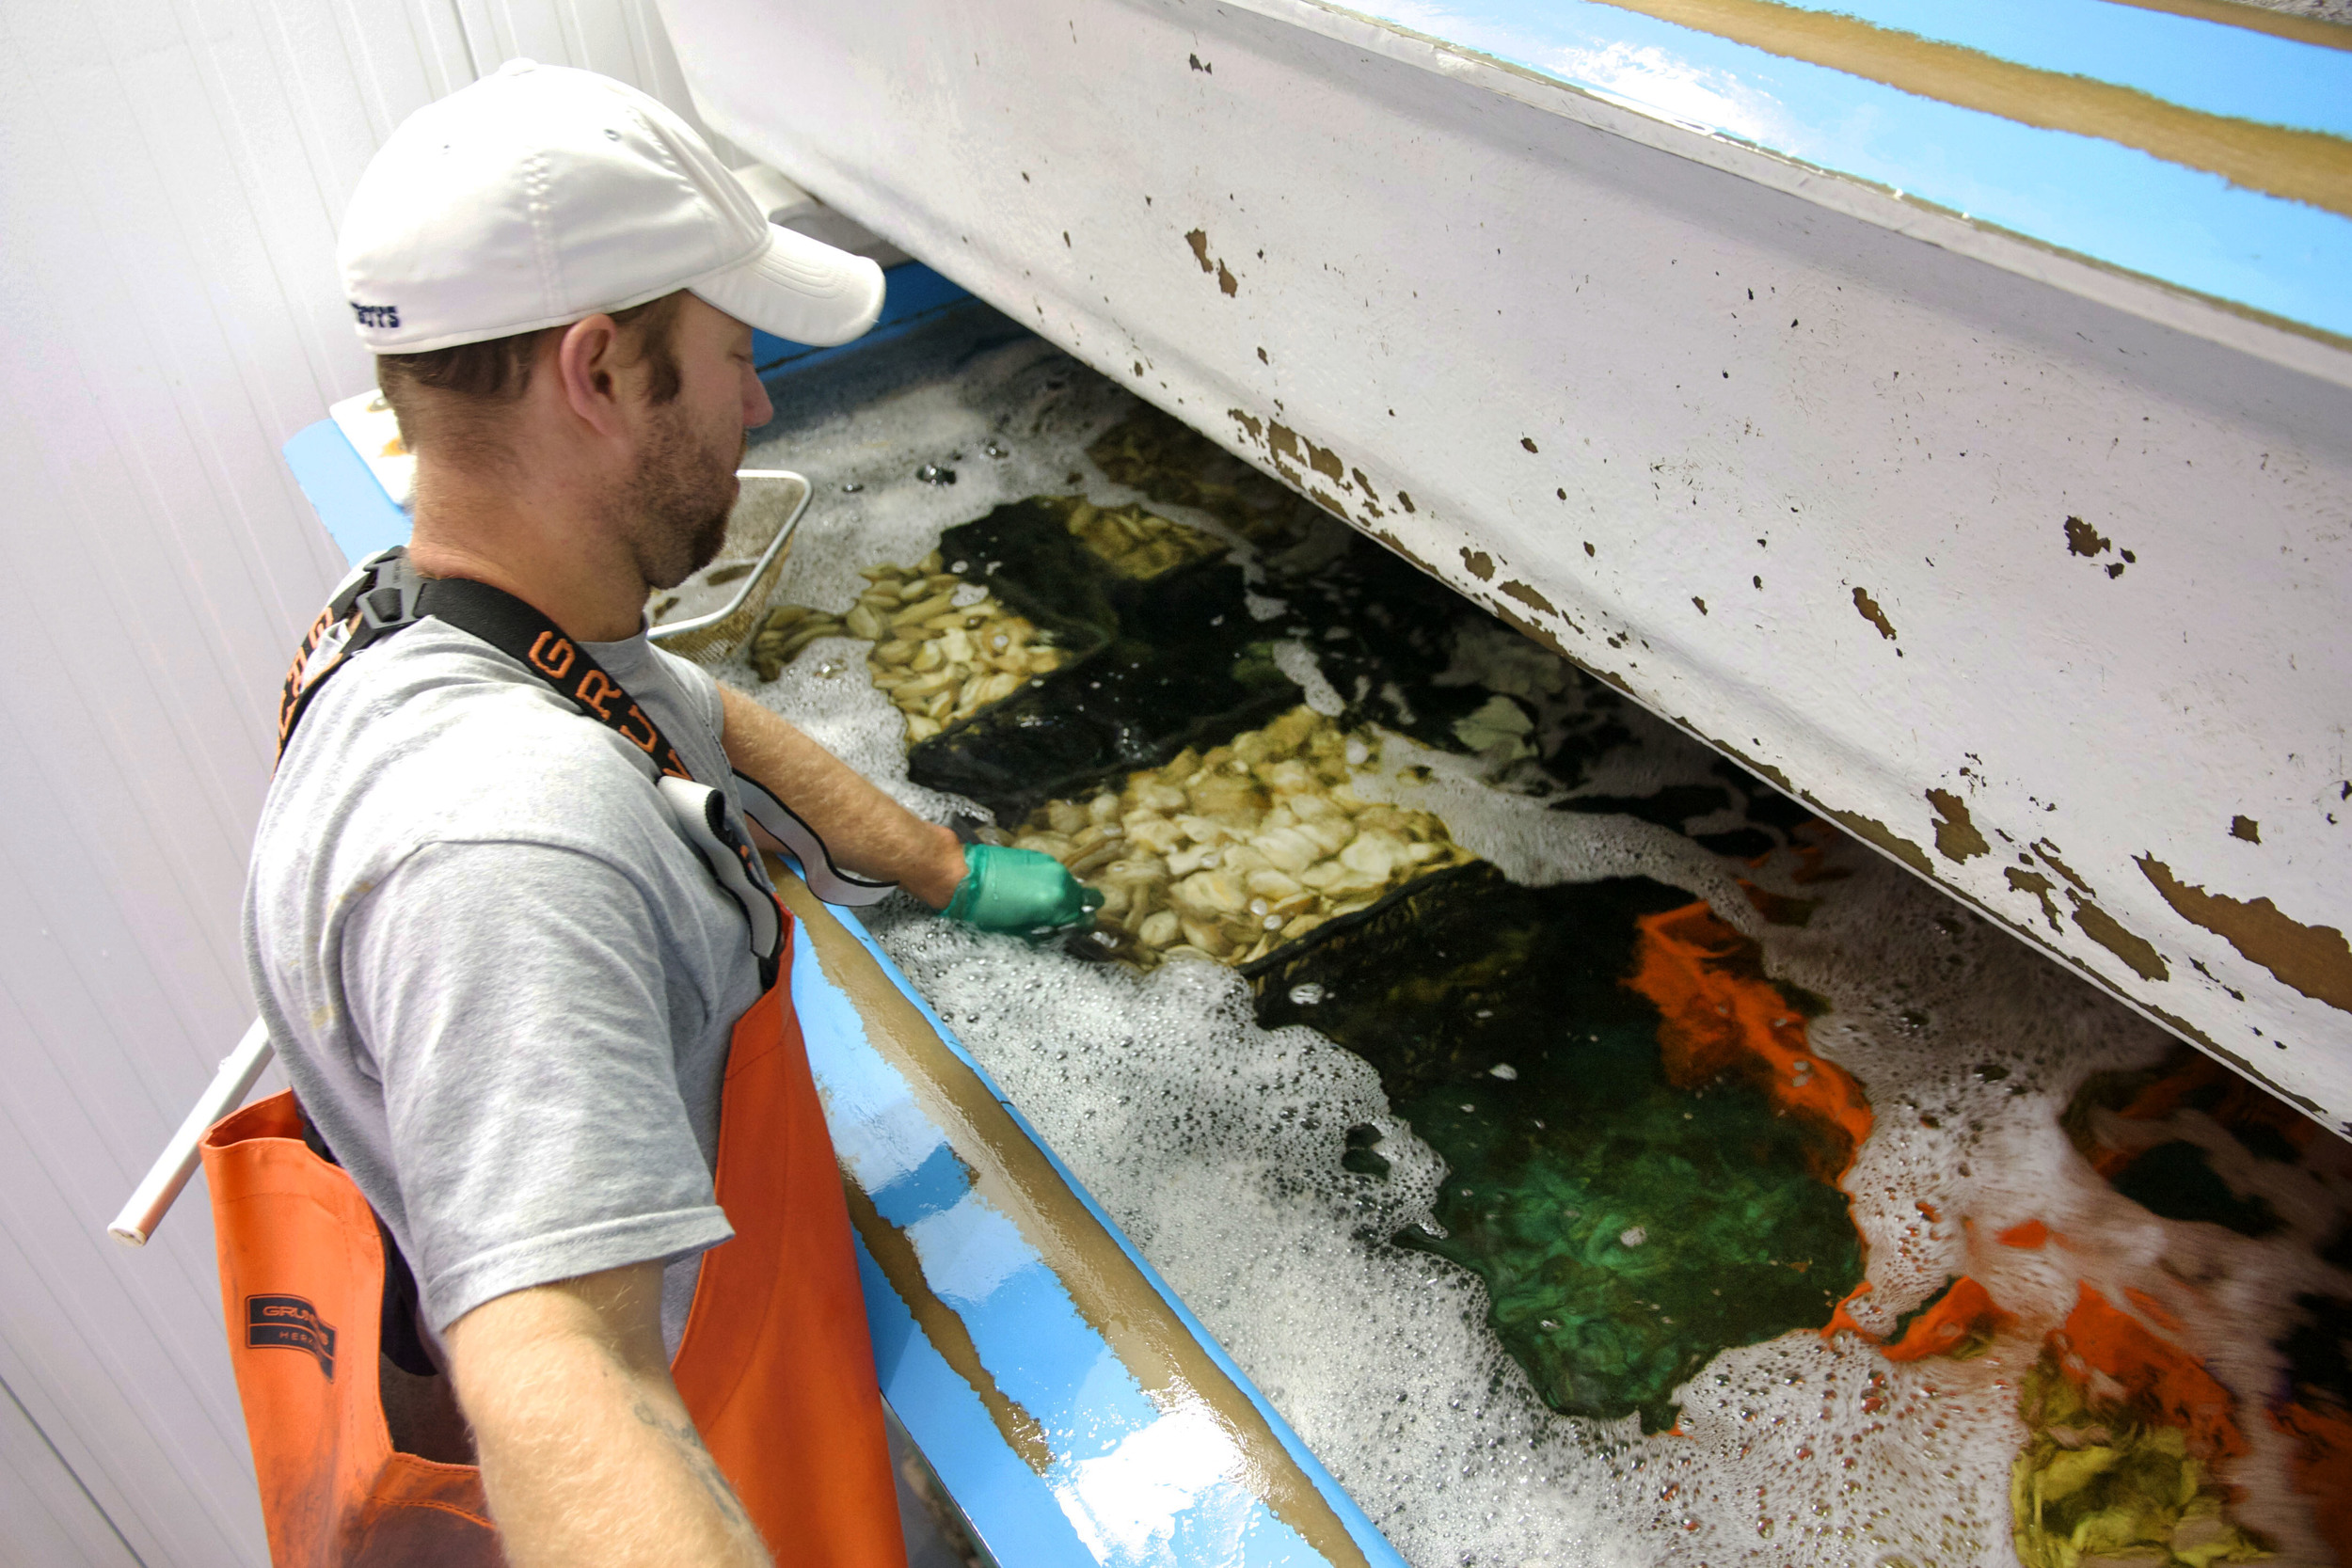 Juliano, our Wet-Storage Specialist, adjusting Perfectly Purged Steamers in the wet-storage system.